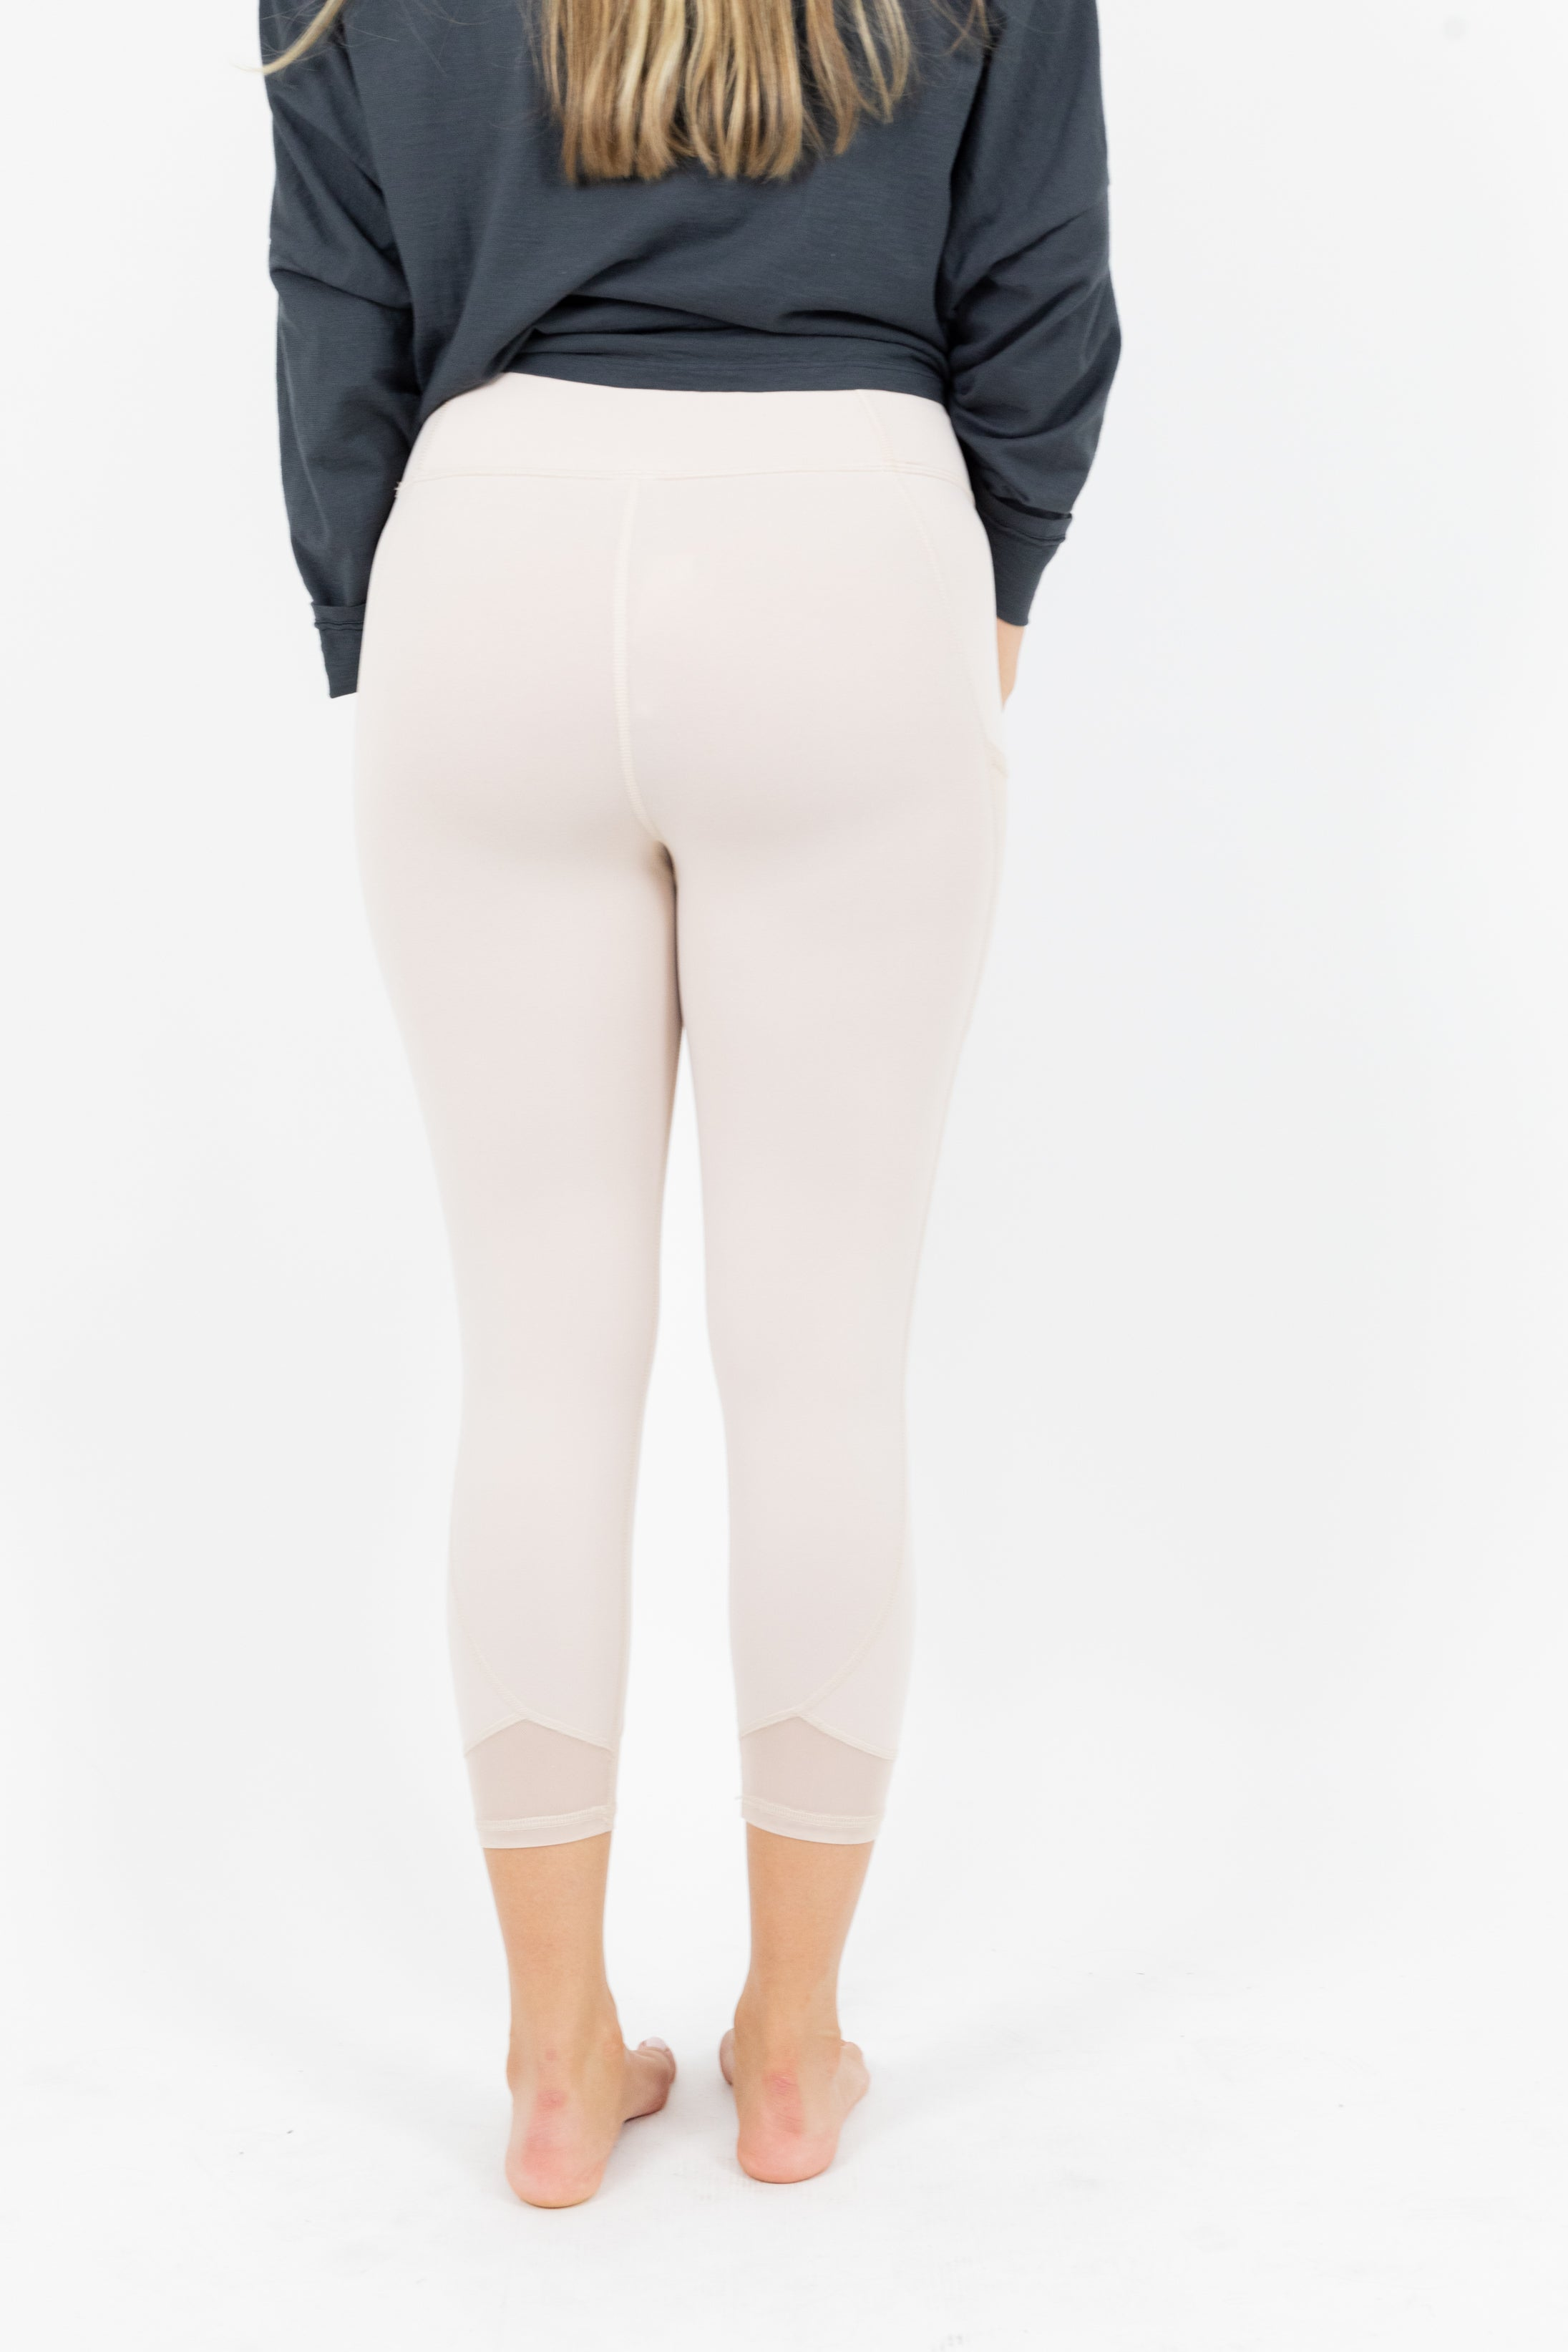 And They Have Pockets! Leggings *Final Sale*